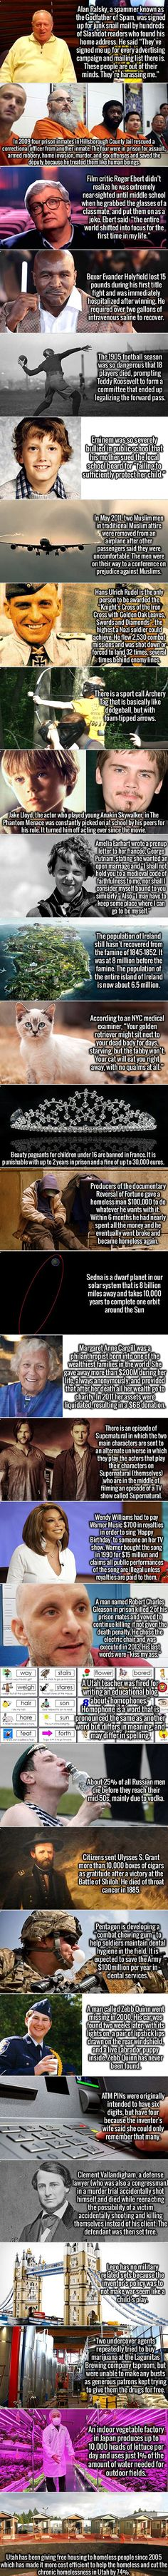 It is that time again, time for some more interesting facts.